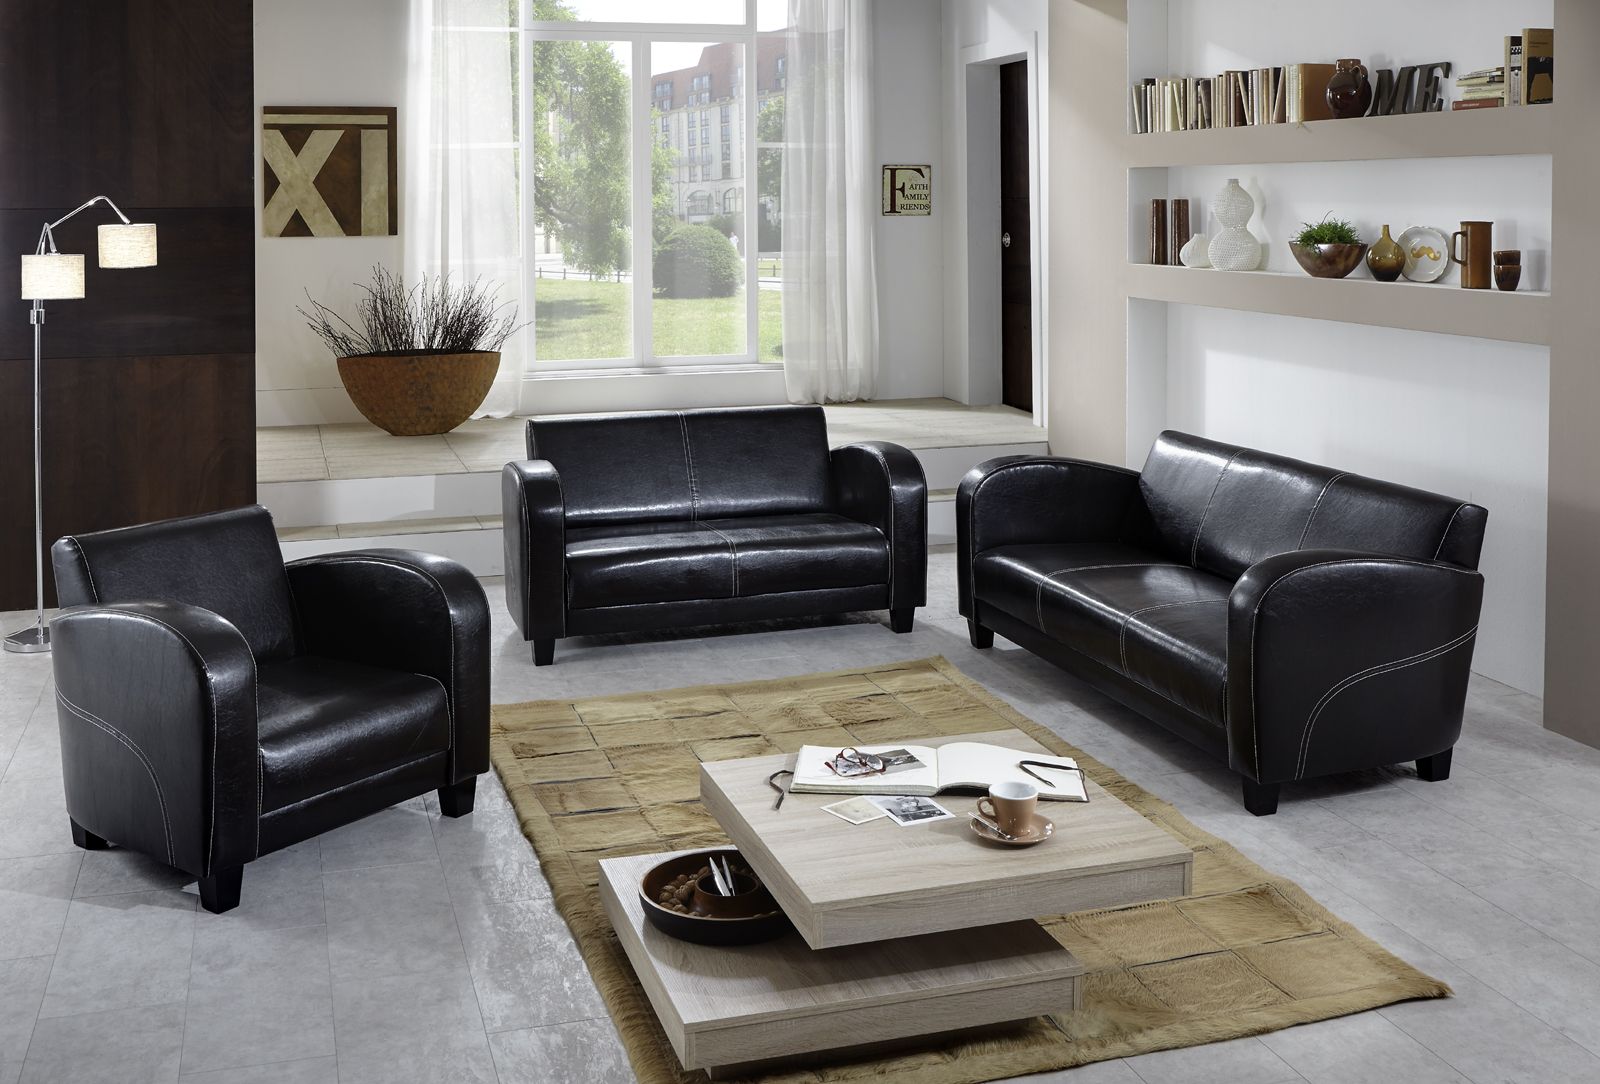 sam 3tlg sofa garnitur antik braun patryk 3 2 1. Black Bedroom Furniture Sets. Home Design Ideas